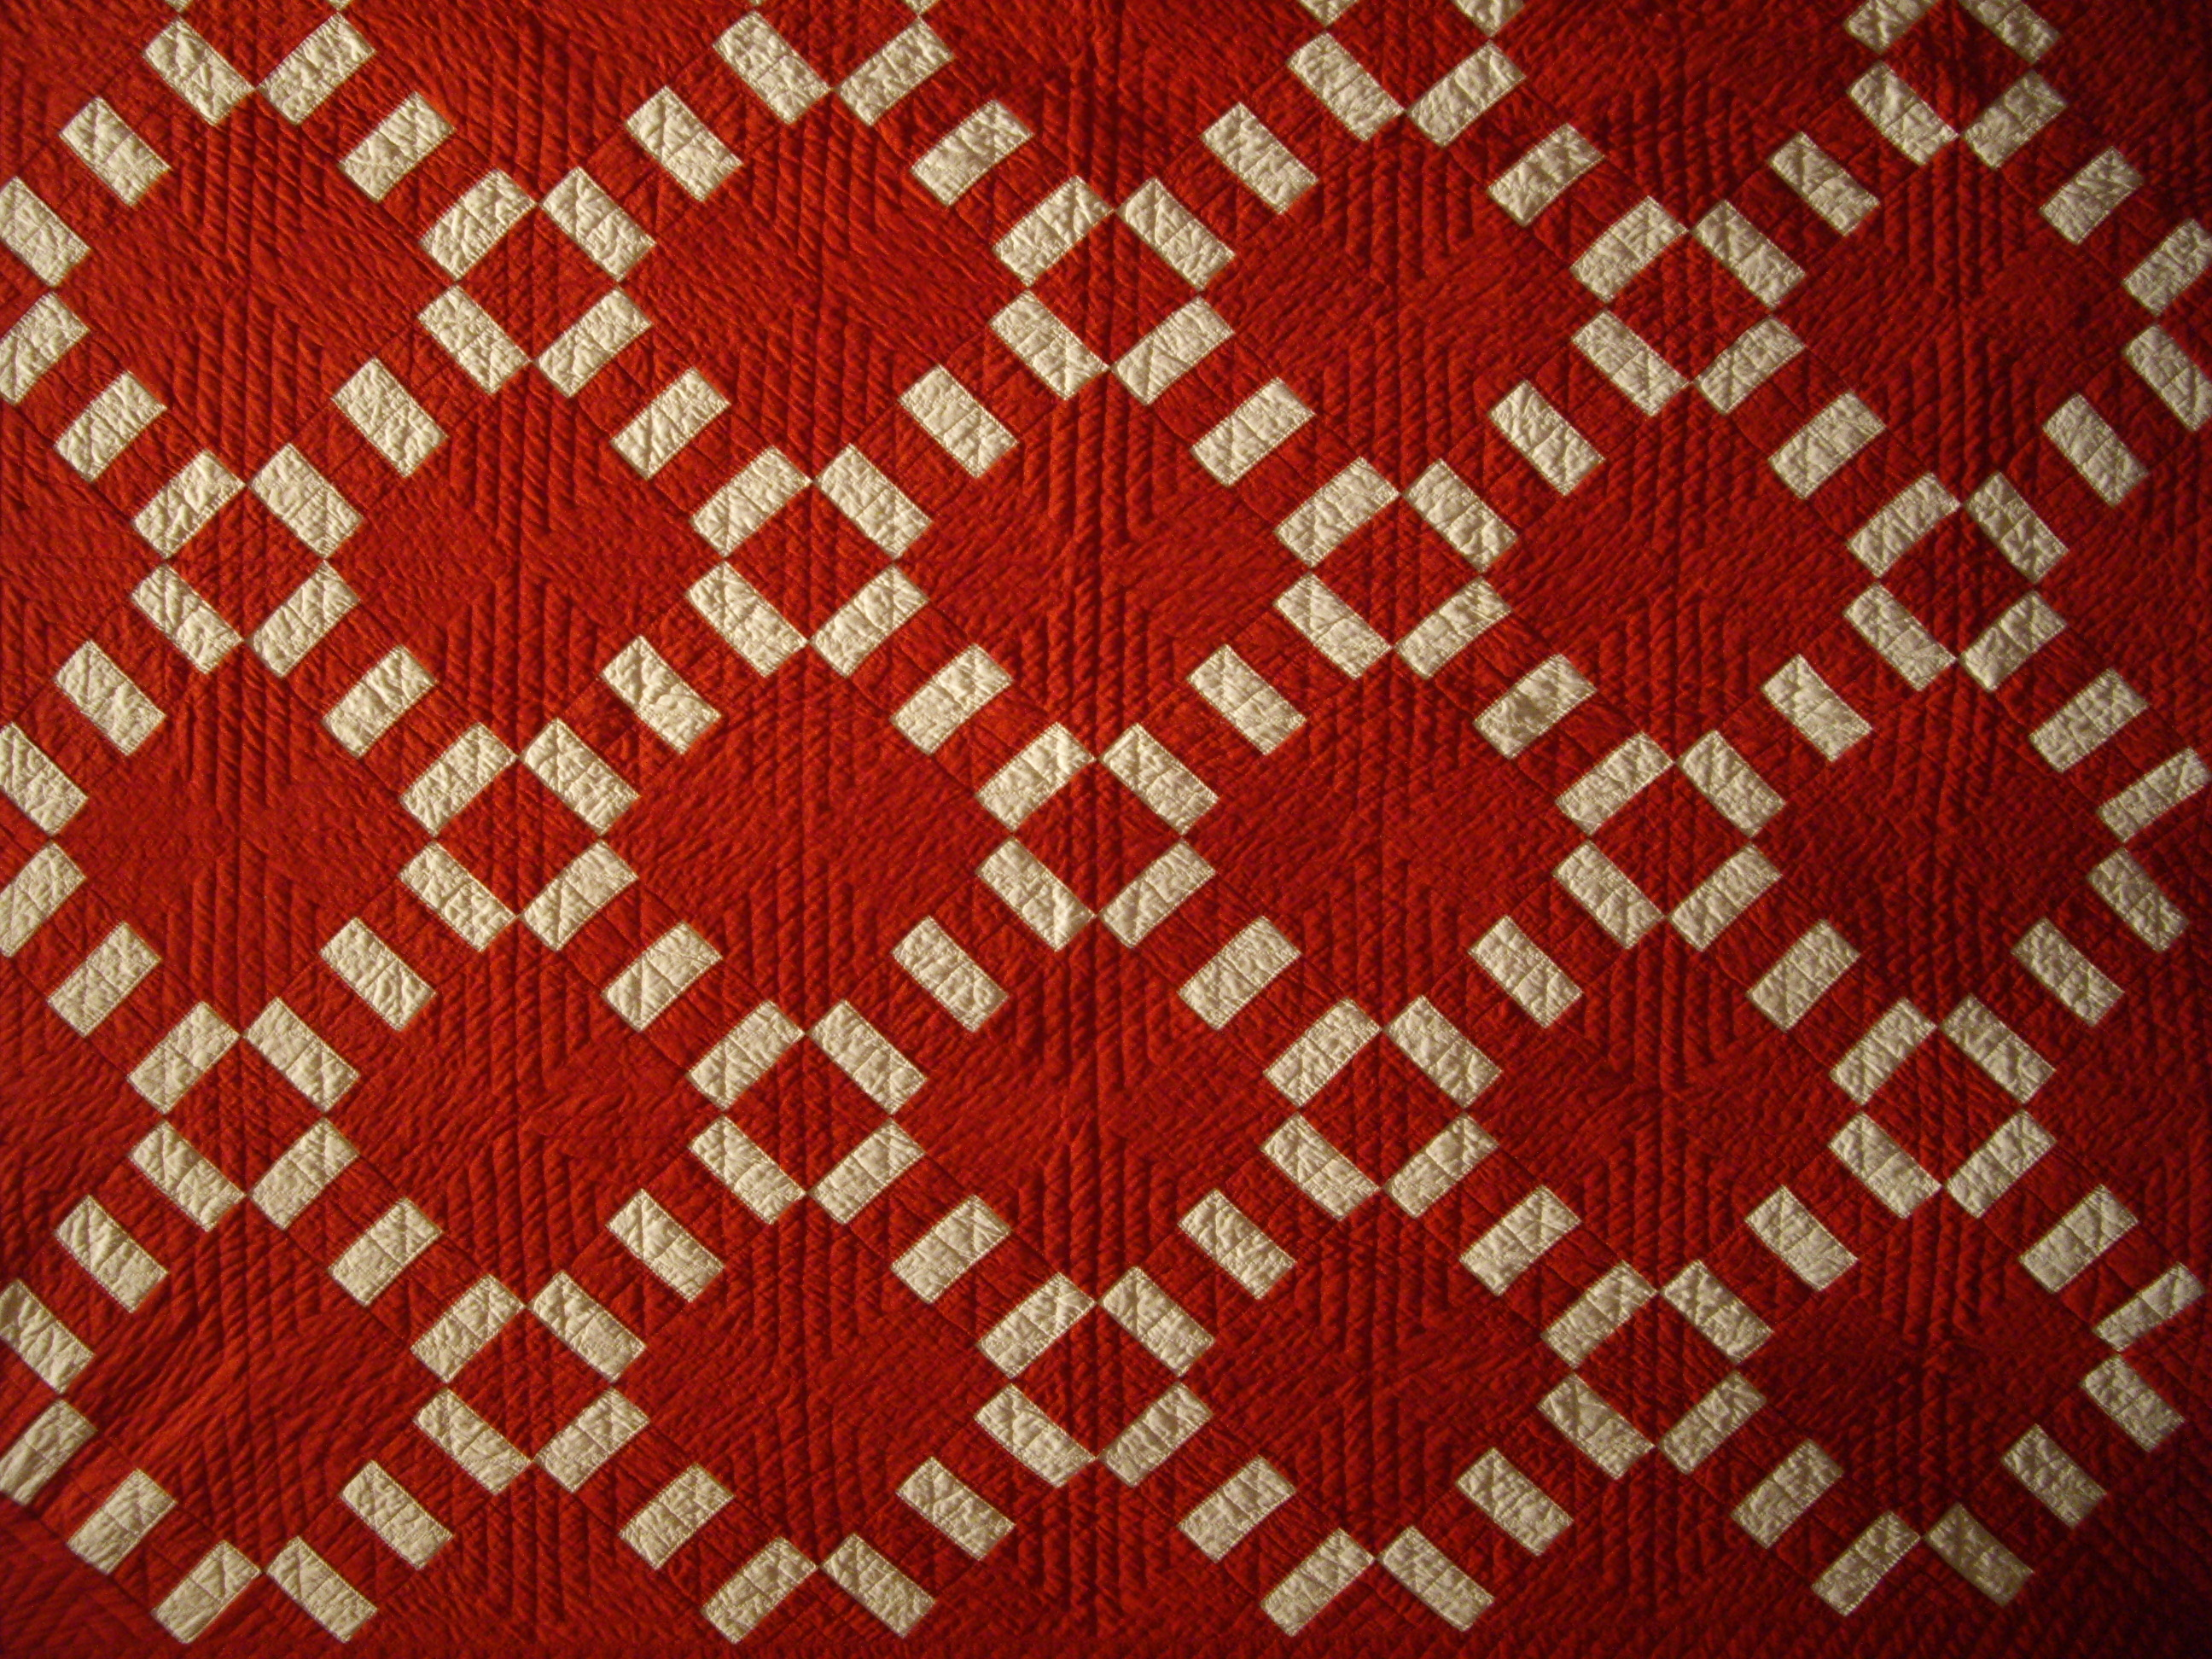 Rosebud's Cottage: My favorite red quilt pix : quilts red - Adamdwight.com